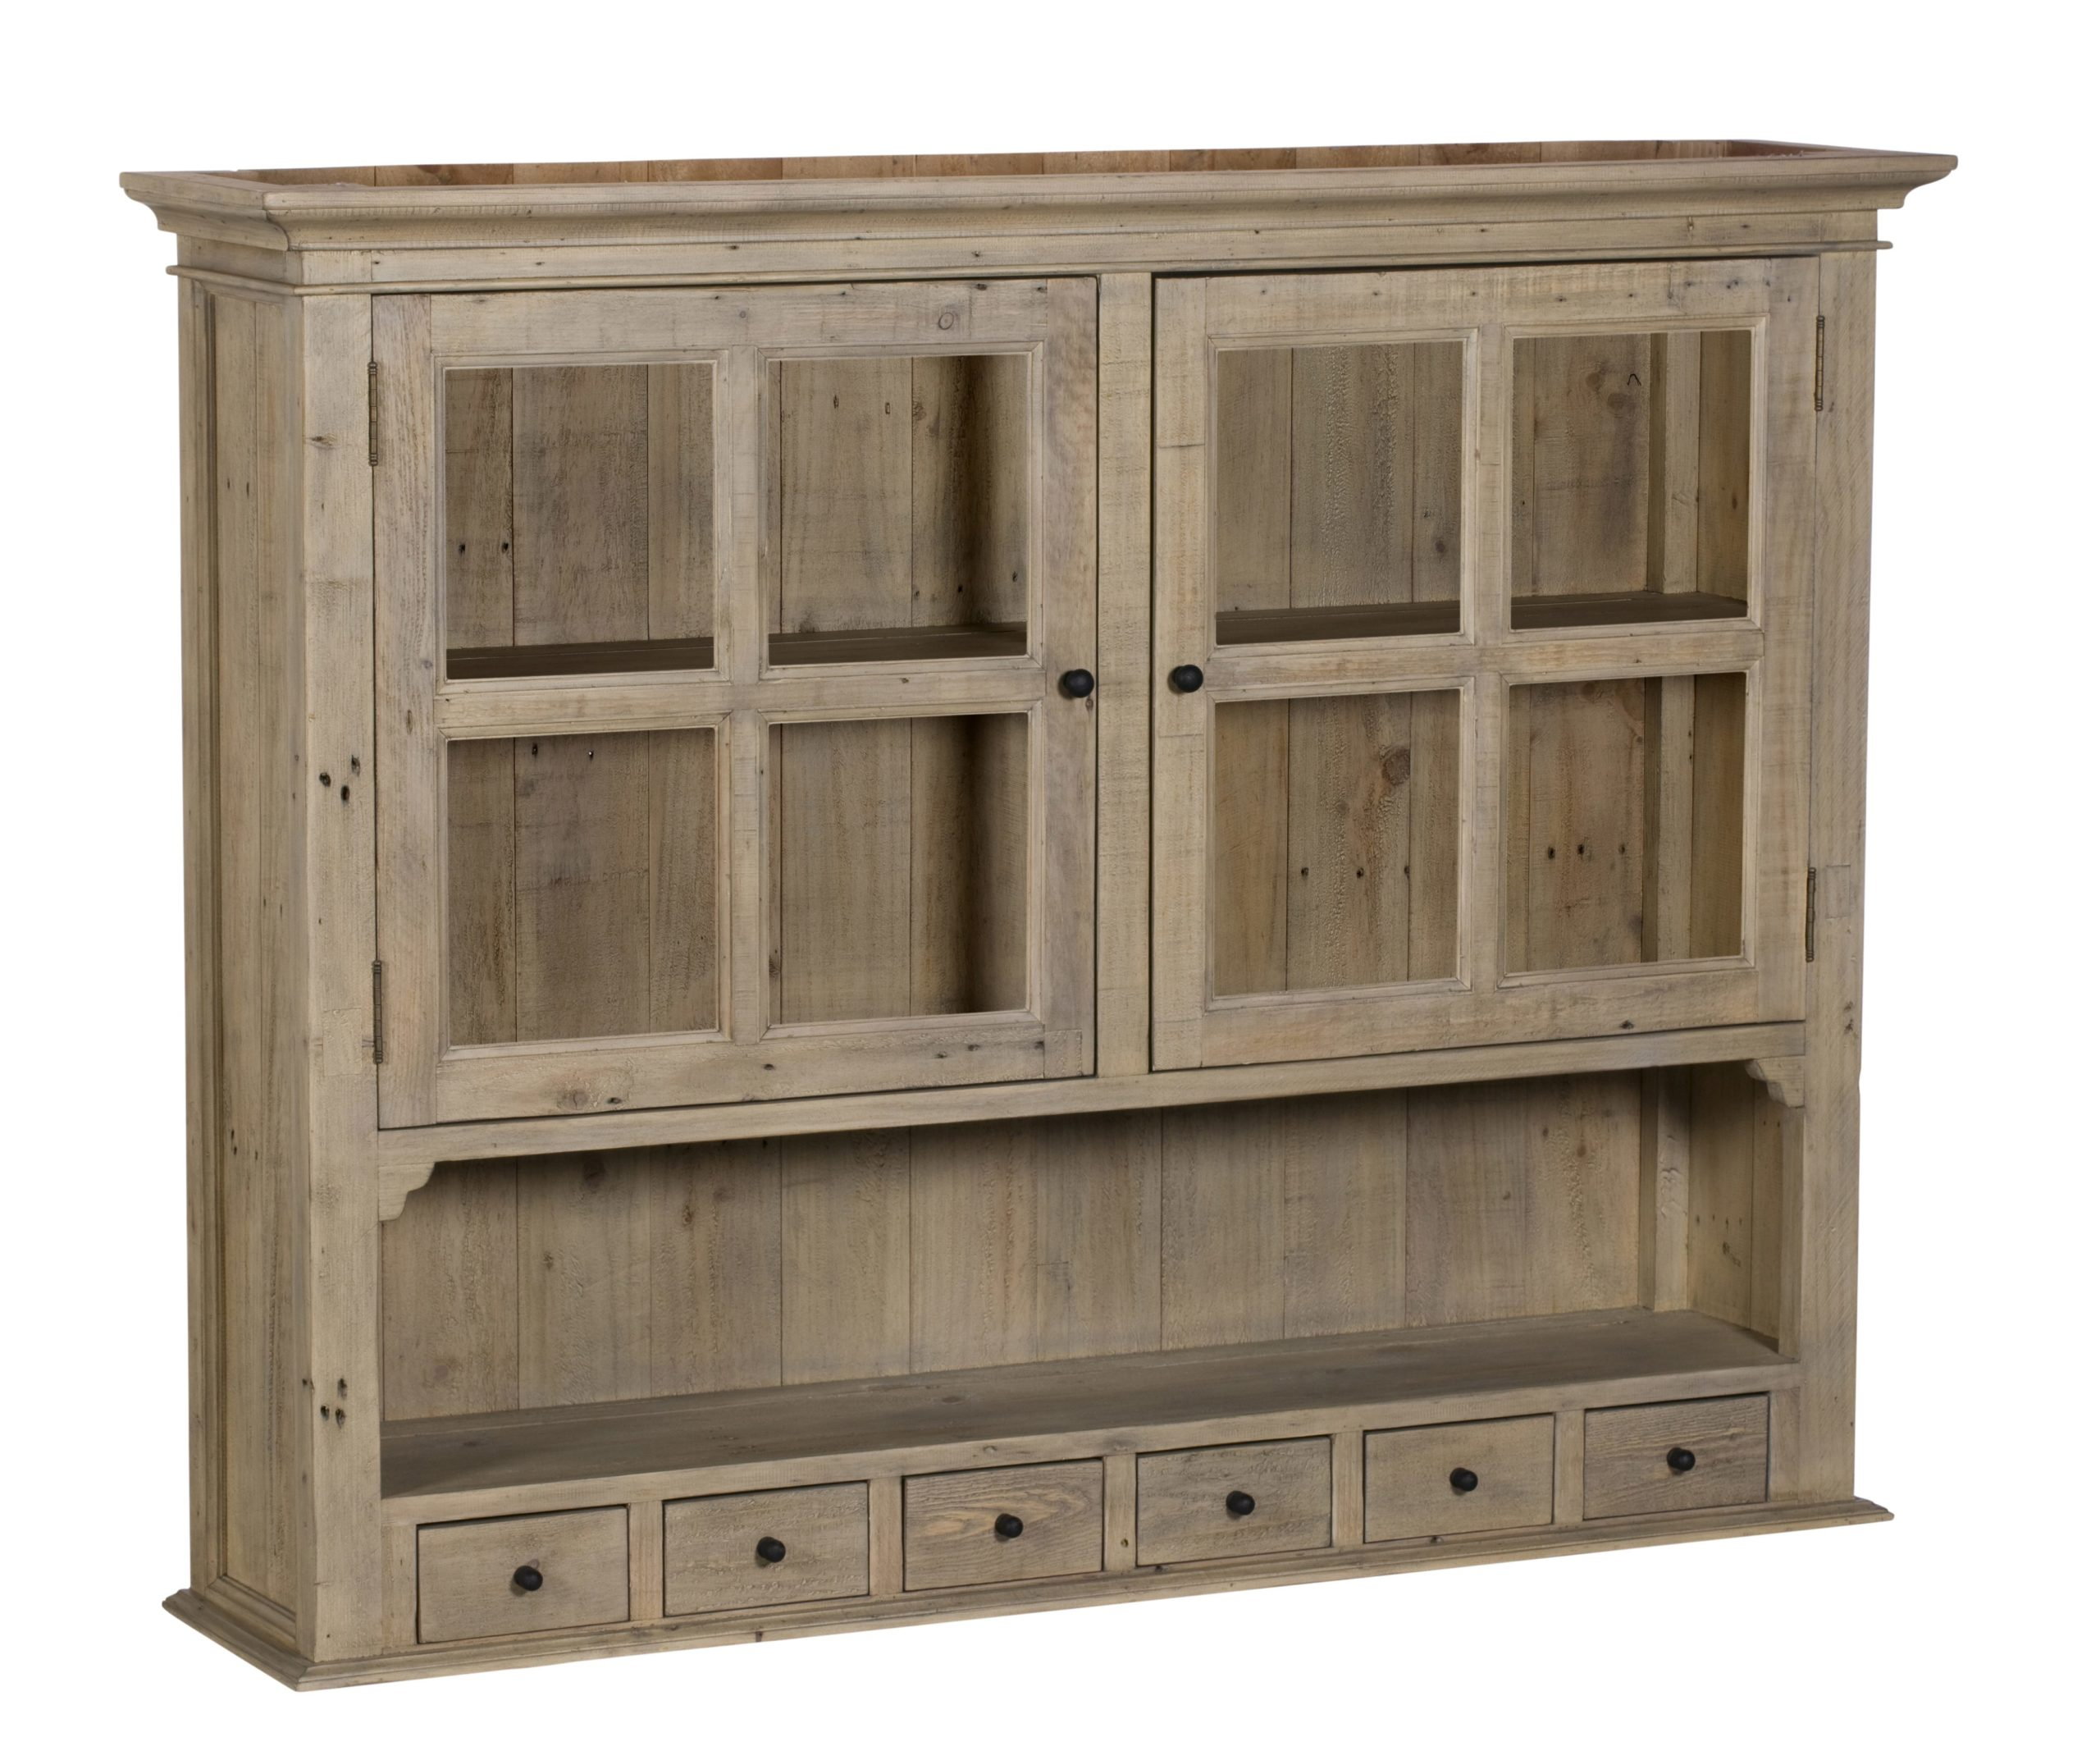 Verona Wide Dresser Top VT11 1 e1573078326273 scaled